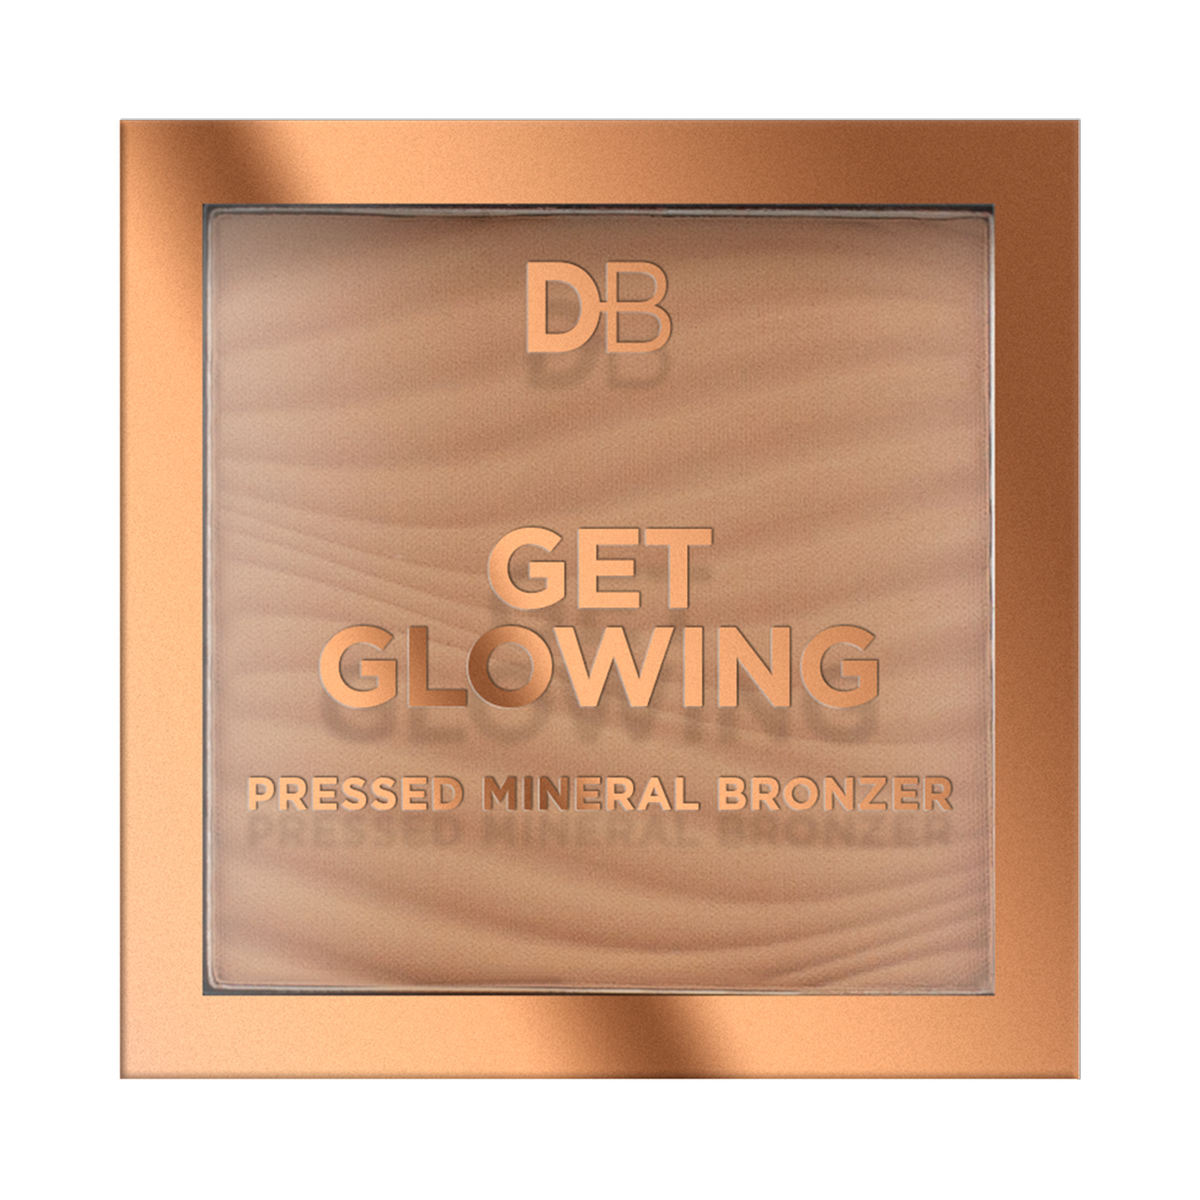 Get Glowing Pressed Mineral Bronzer (Miami Heat)